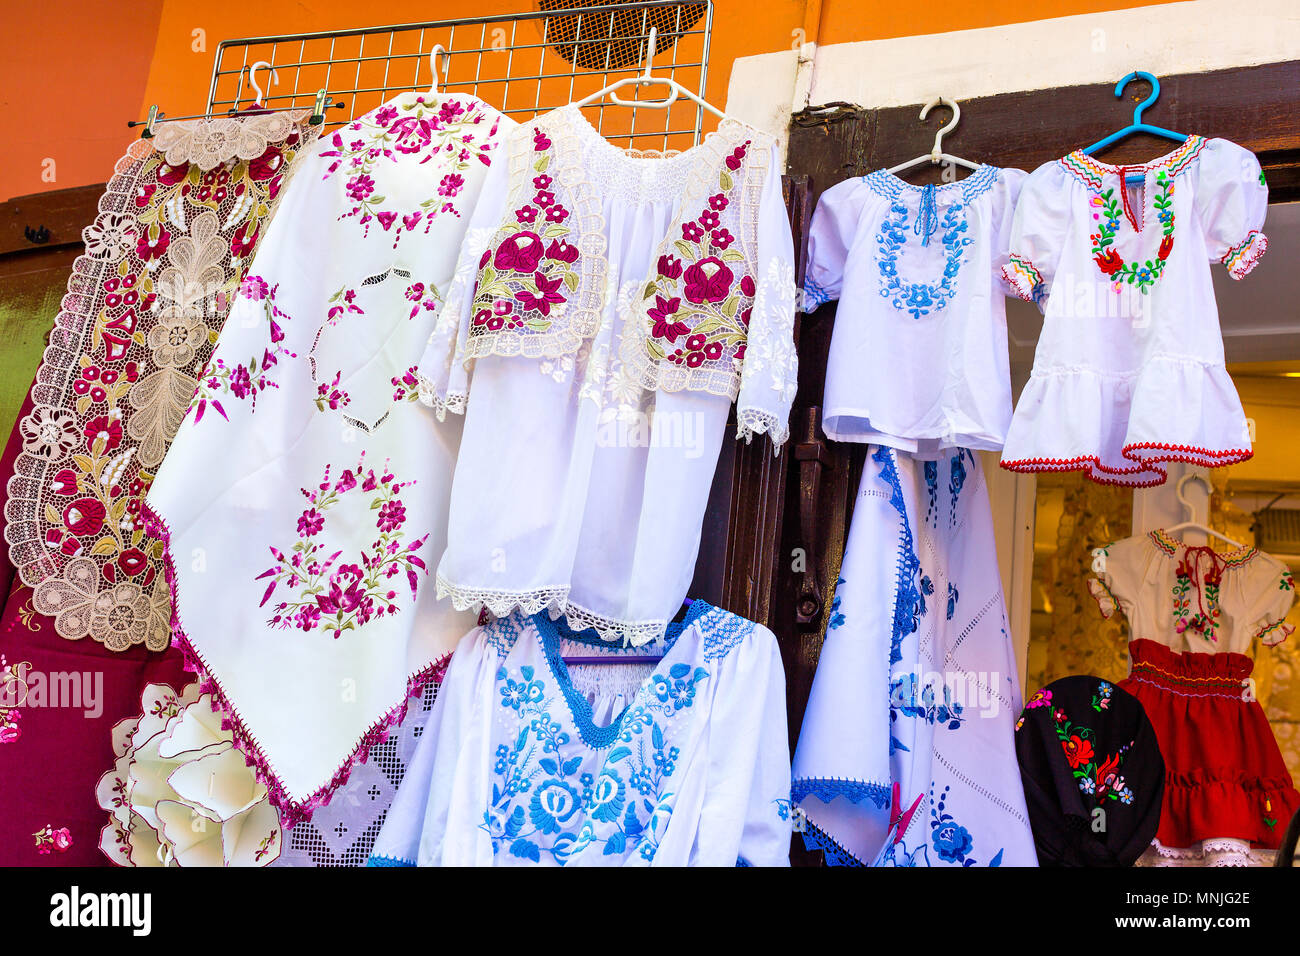 Beautiful bright ethnic shirts and tablecloths with traditional Hungarian embroidery in a street store - Stock Image